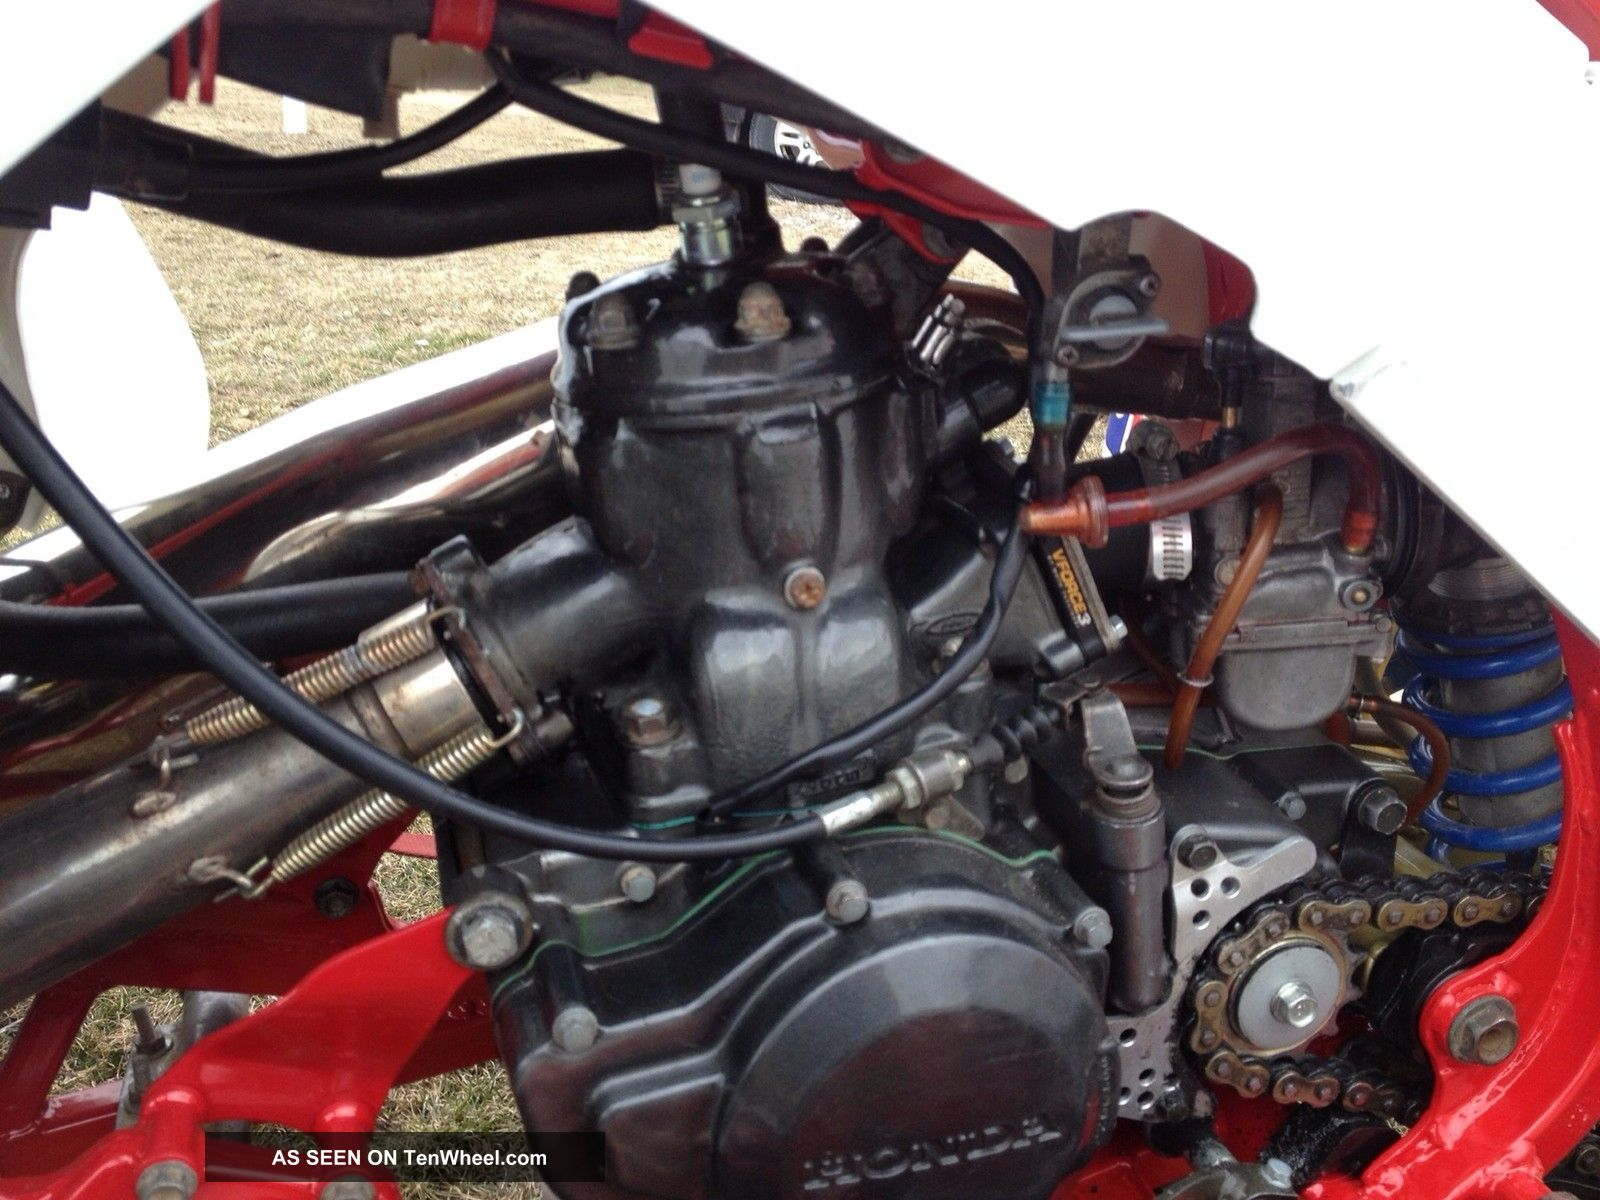 Honda Fourtrax 350 Wiring Diagram Also Honda Trx 250 Wiring Diagram